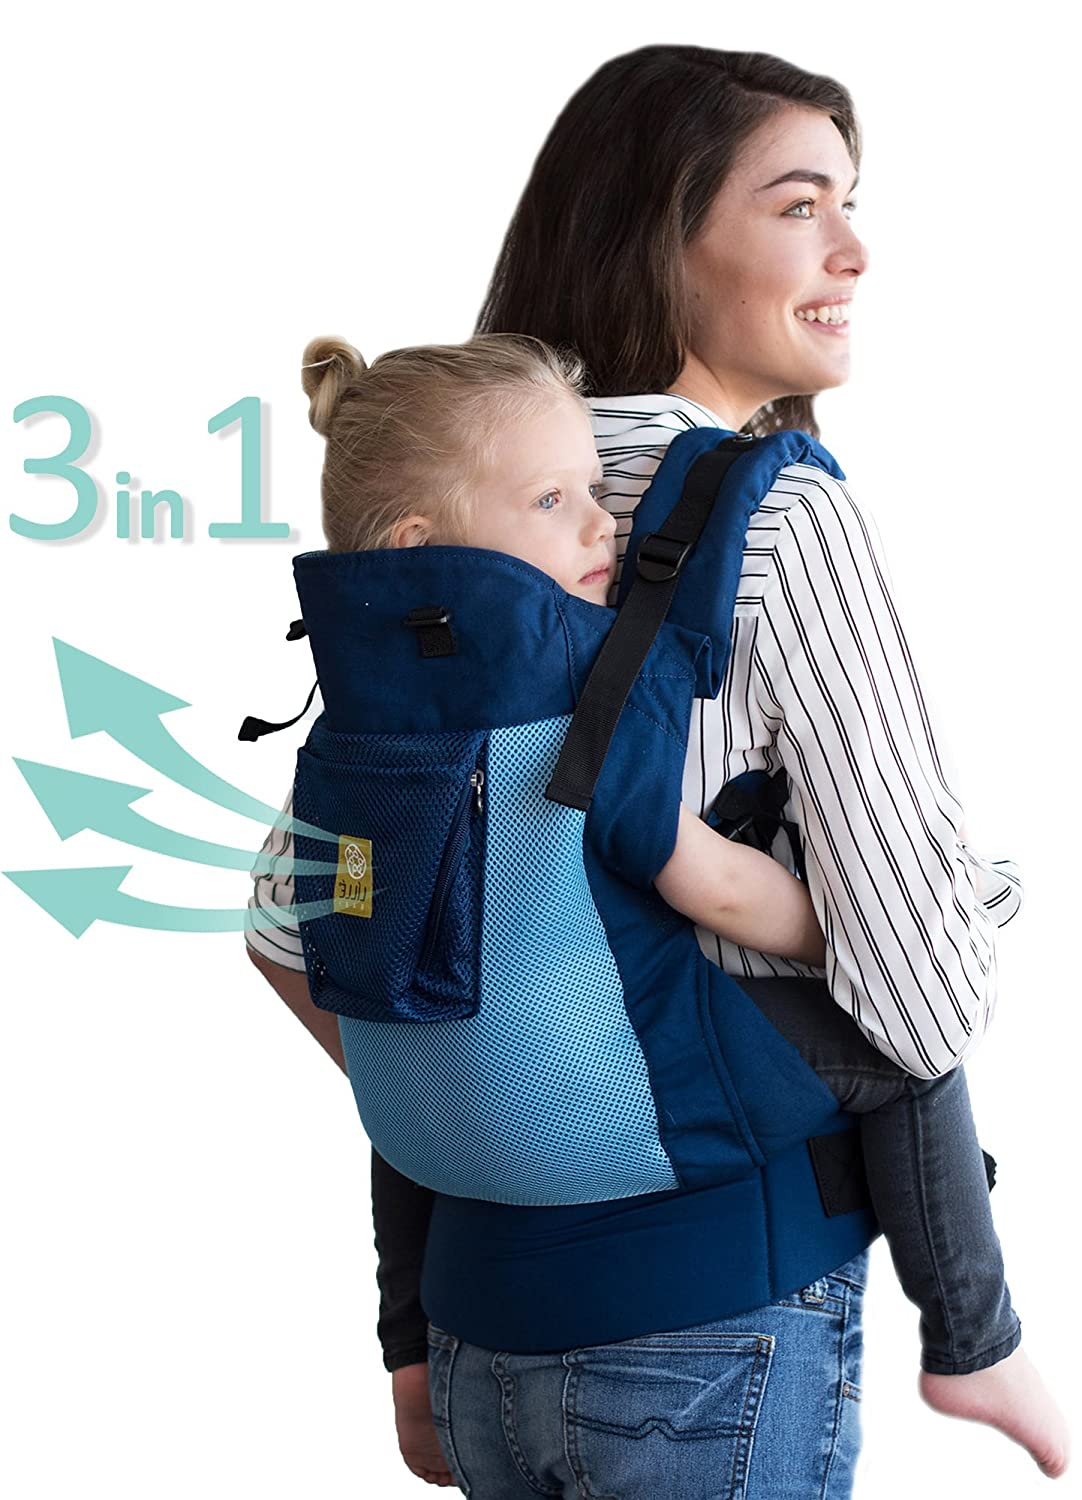 L LL baby CarryOn Airflow 3-in-1 Ergonomic Toddler Child Carrier, Blue Aqua – 20 to 60 lbs